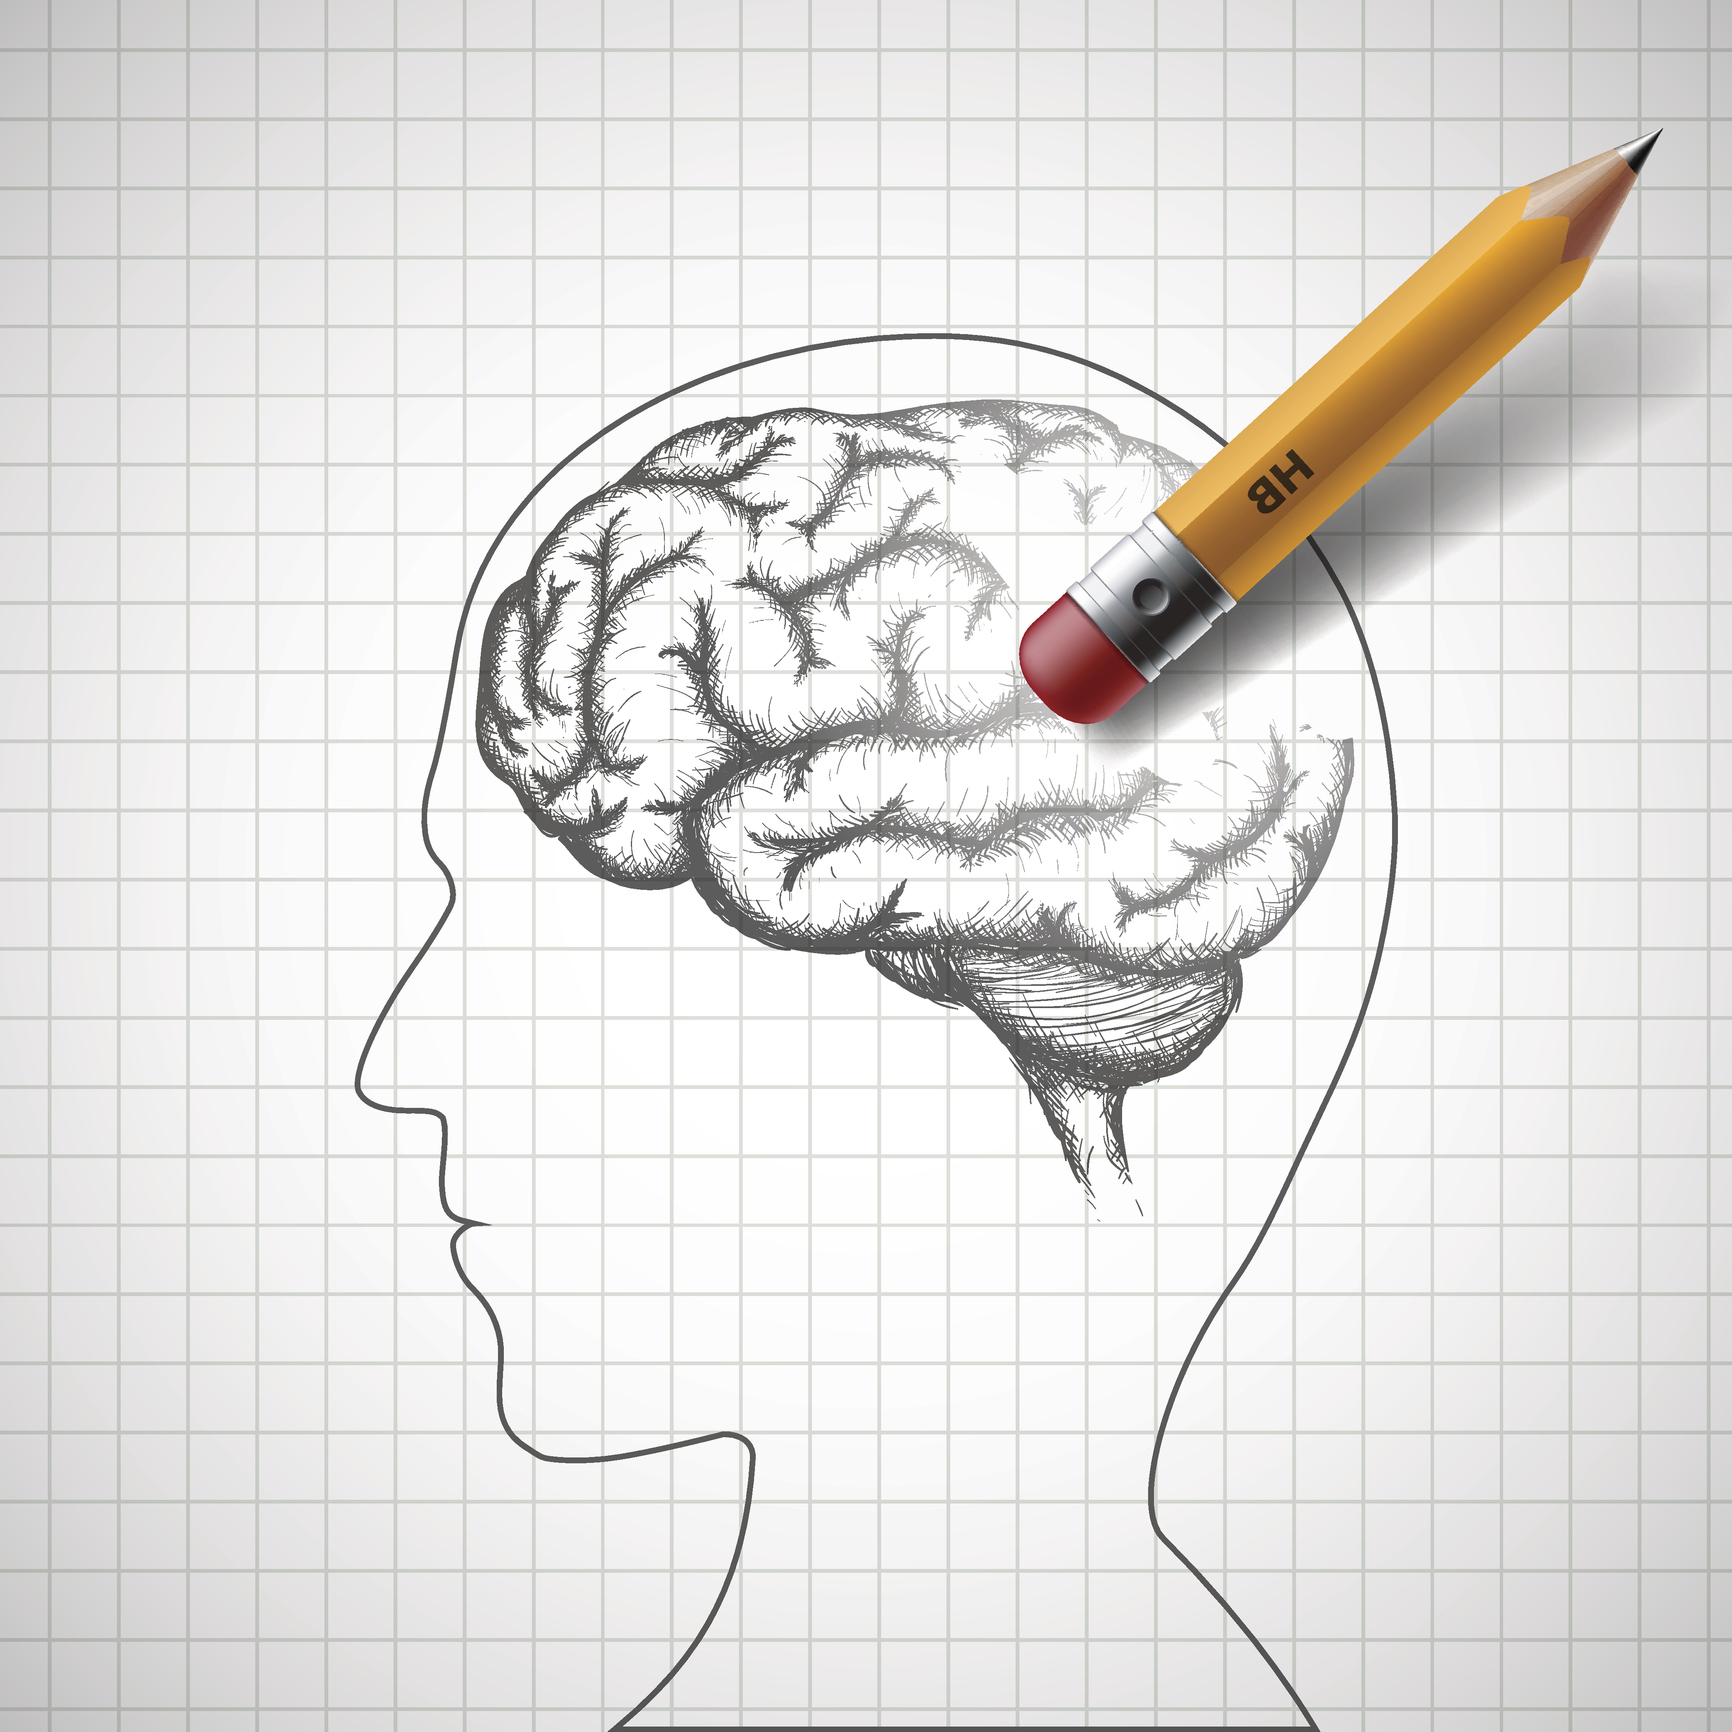 Pencil erases the human brain. Alzheimer disease.